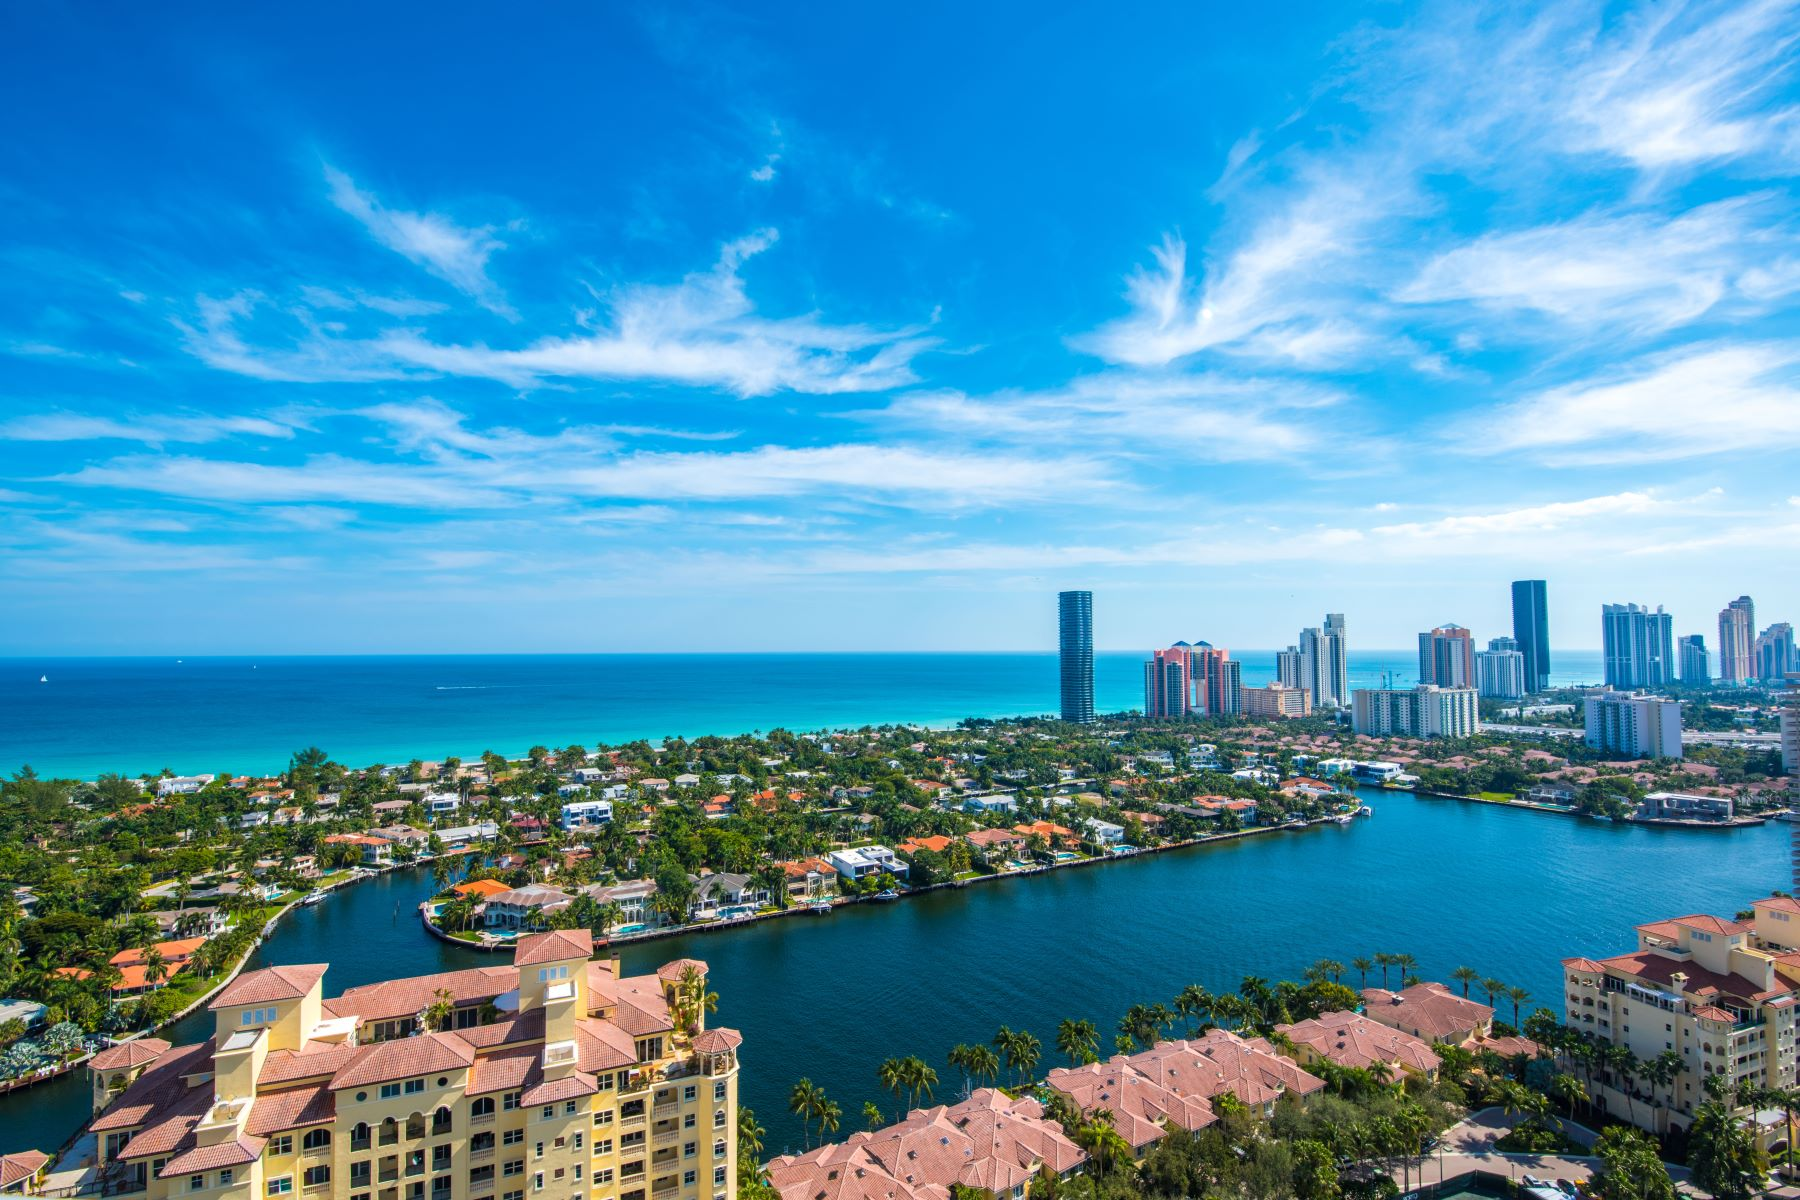 Condominium for Sale at 20155 Ne 38th Ct 20155 Ne 38th Ct TS-03 Aventura, Florida 33180 United States